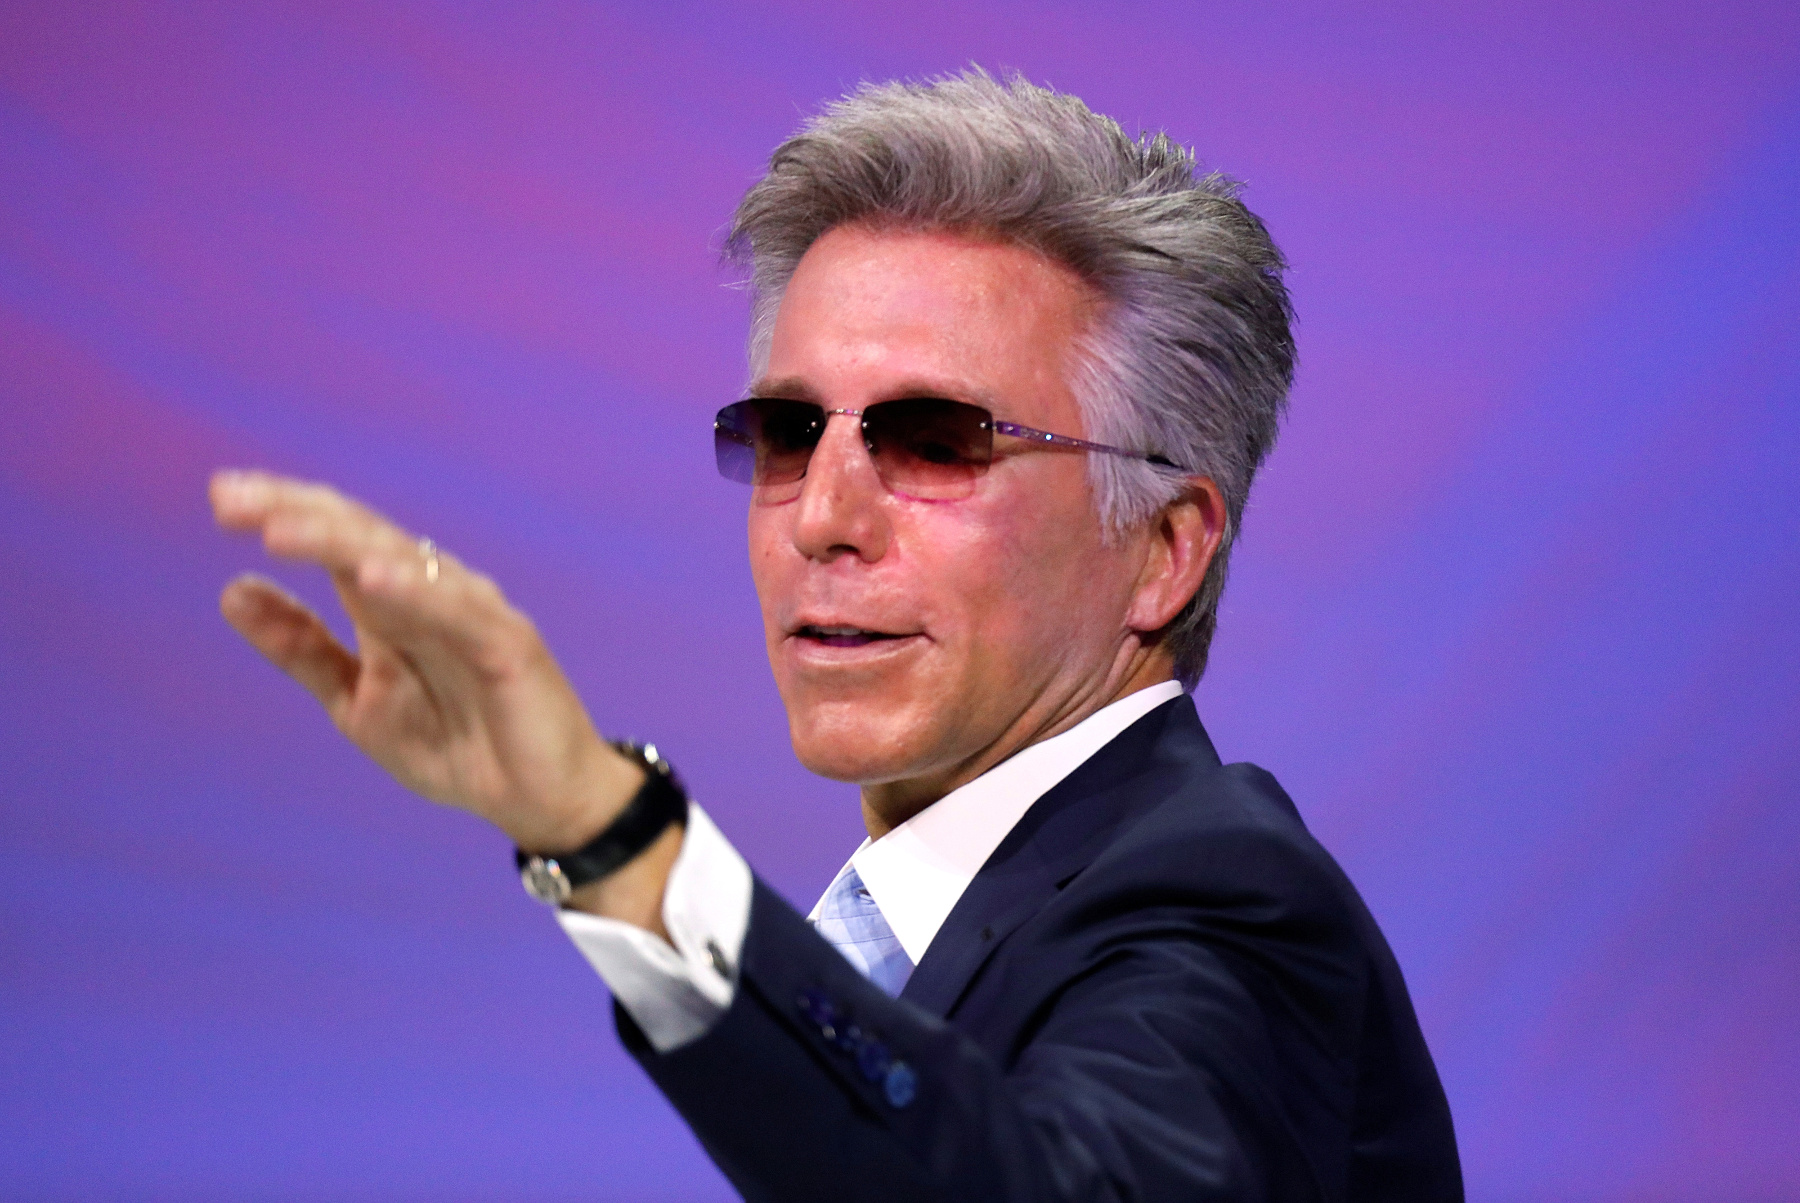 Bill McDermott, bivši direktor SAP-a